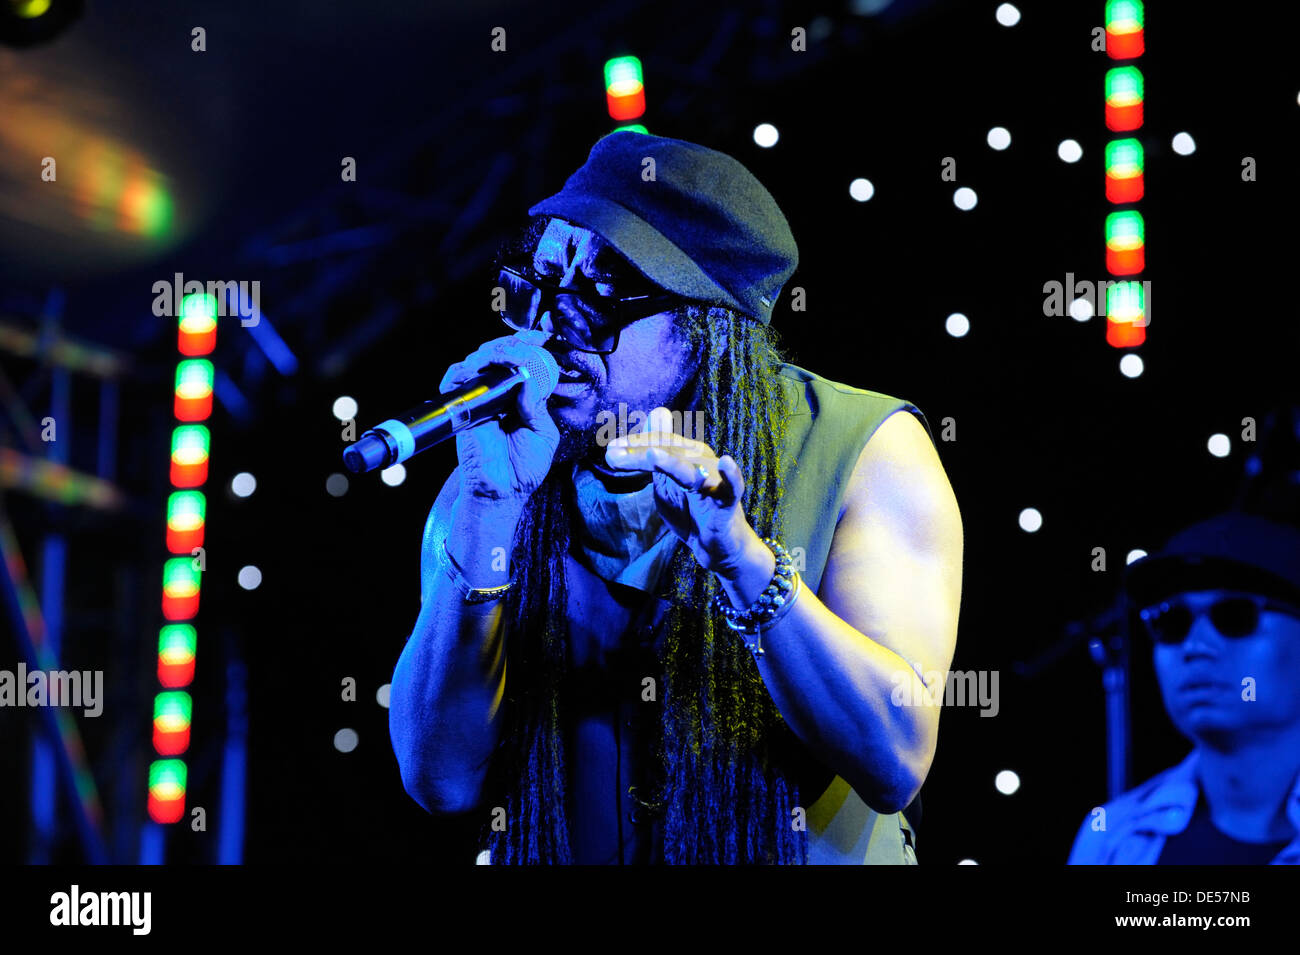 Jamaican British singer Maxi Priest on stage at the The Flyover Show, Hockley Circus, Birmingham, England, 18 August 2012 - Stock Image